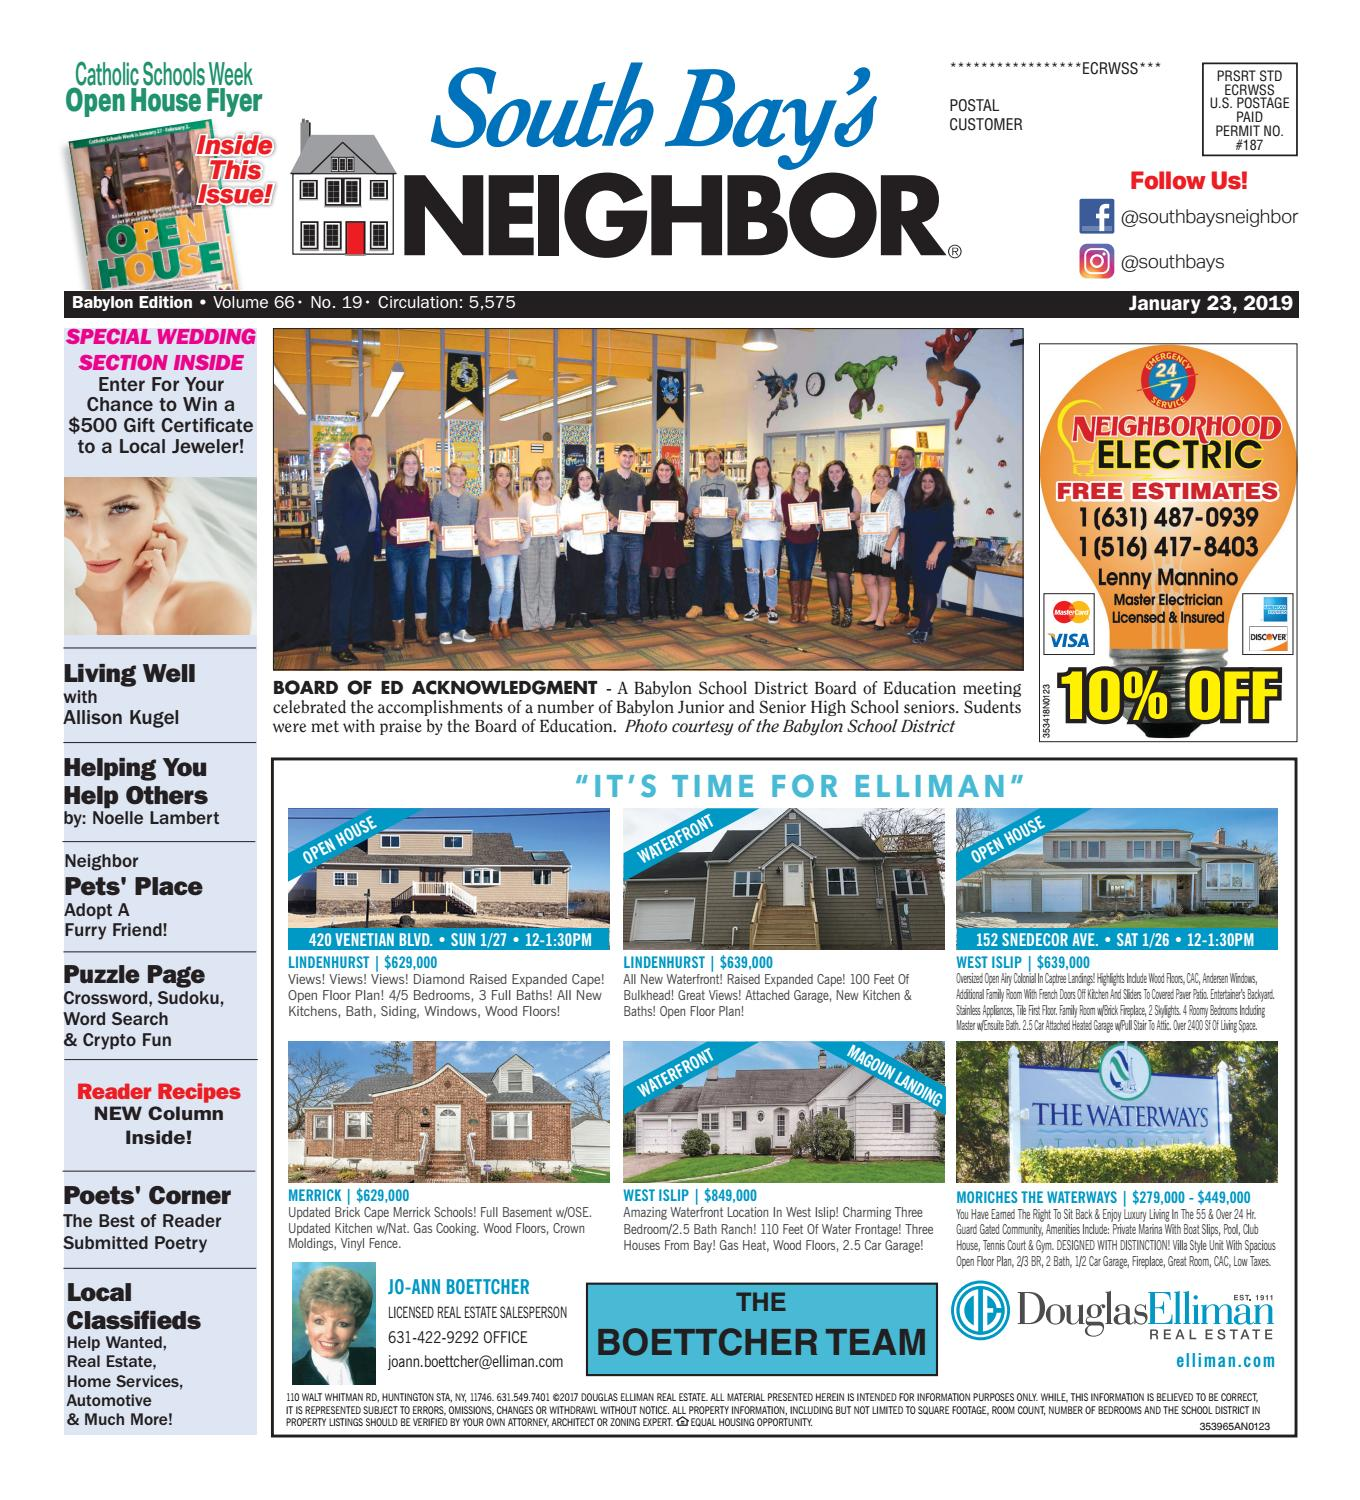 January 23, 2019 Babylon by South Bay's Neighbor Newspapers